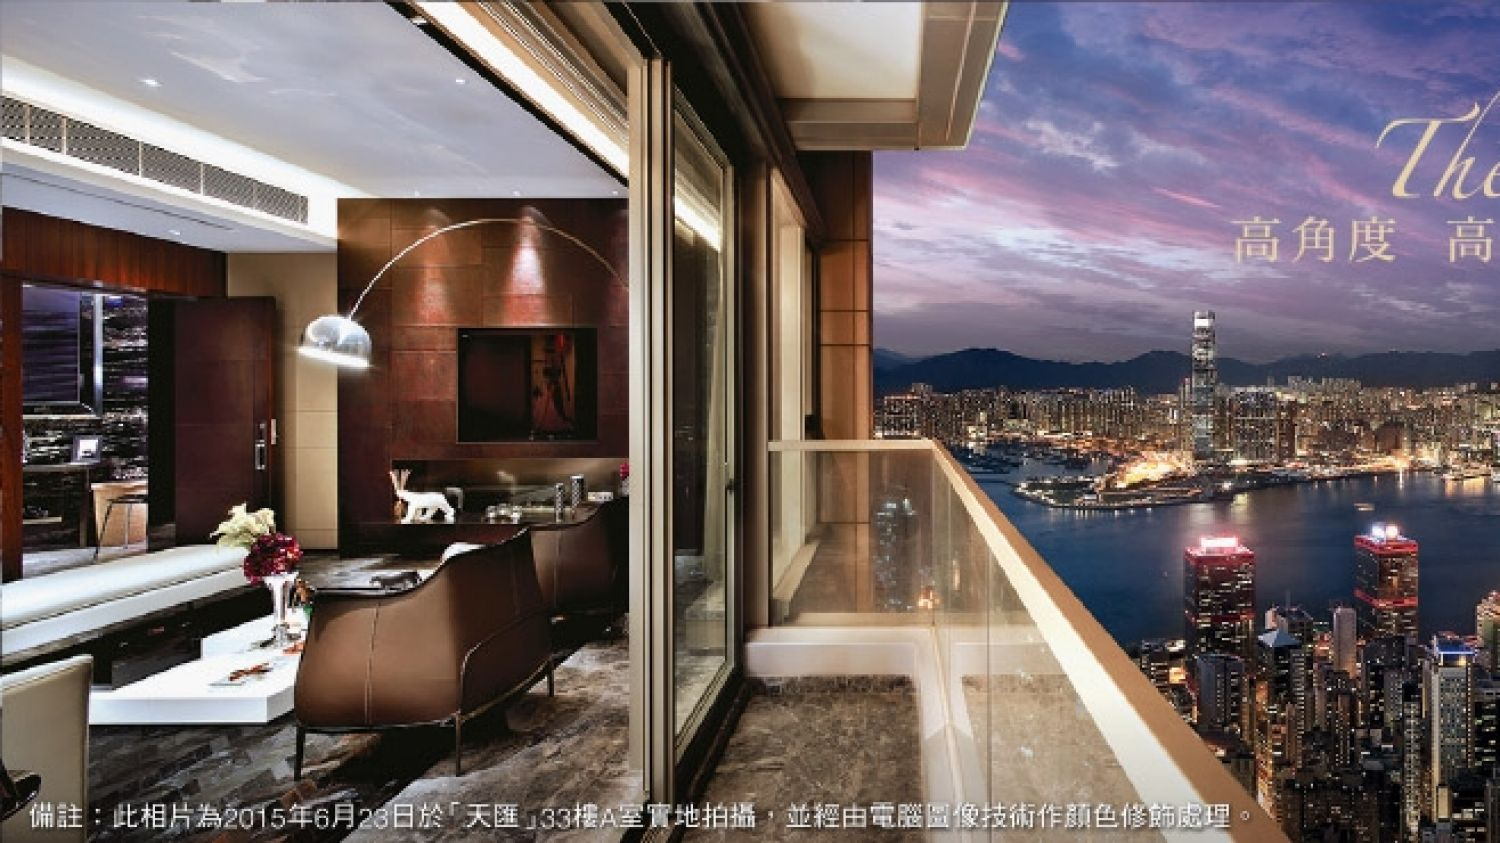 Hong Kong Apartment Interior A Hong Kong Apartment Sets An Asian Price Record Amid